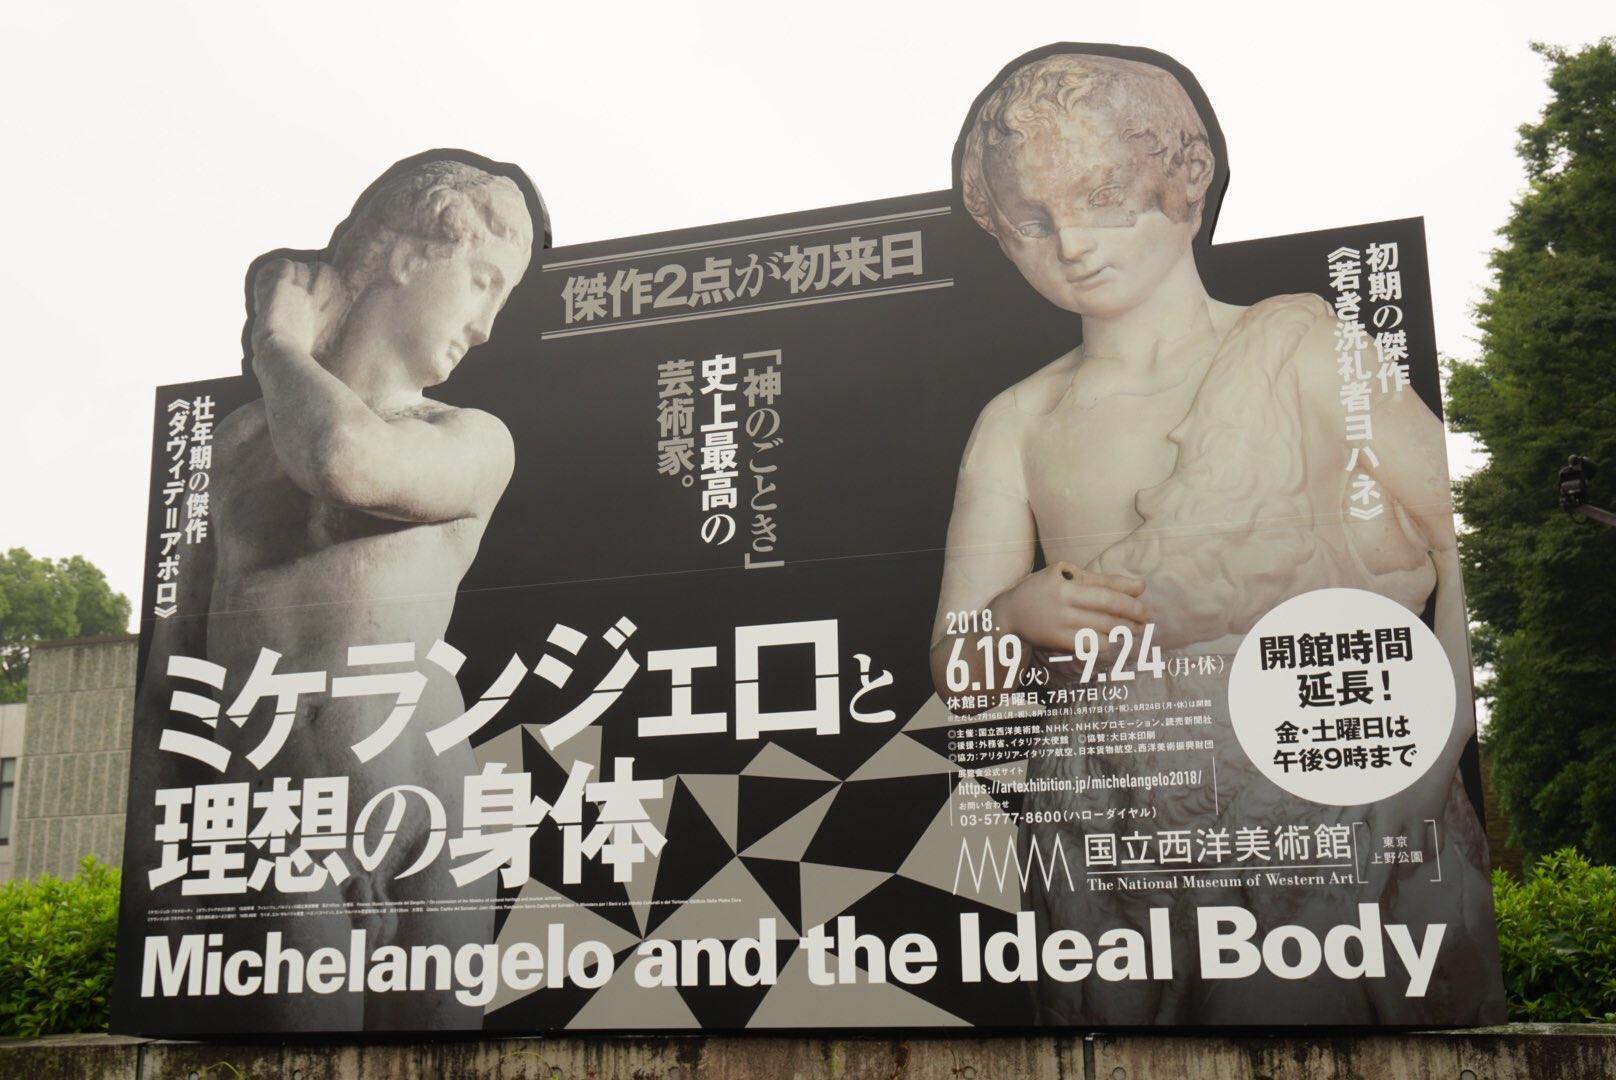 Michelangelo and the Ideal Body exhibition. https://t.co/aztQWuWHqX